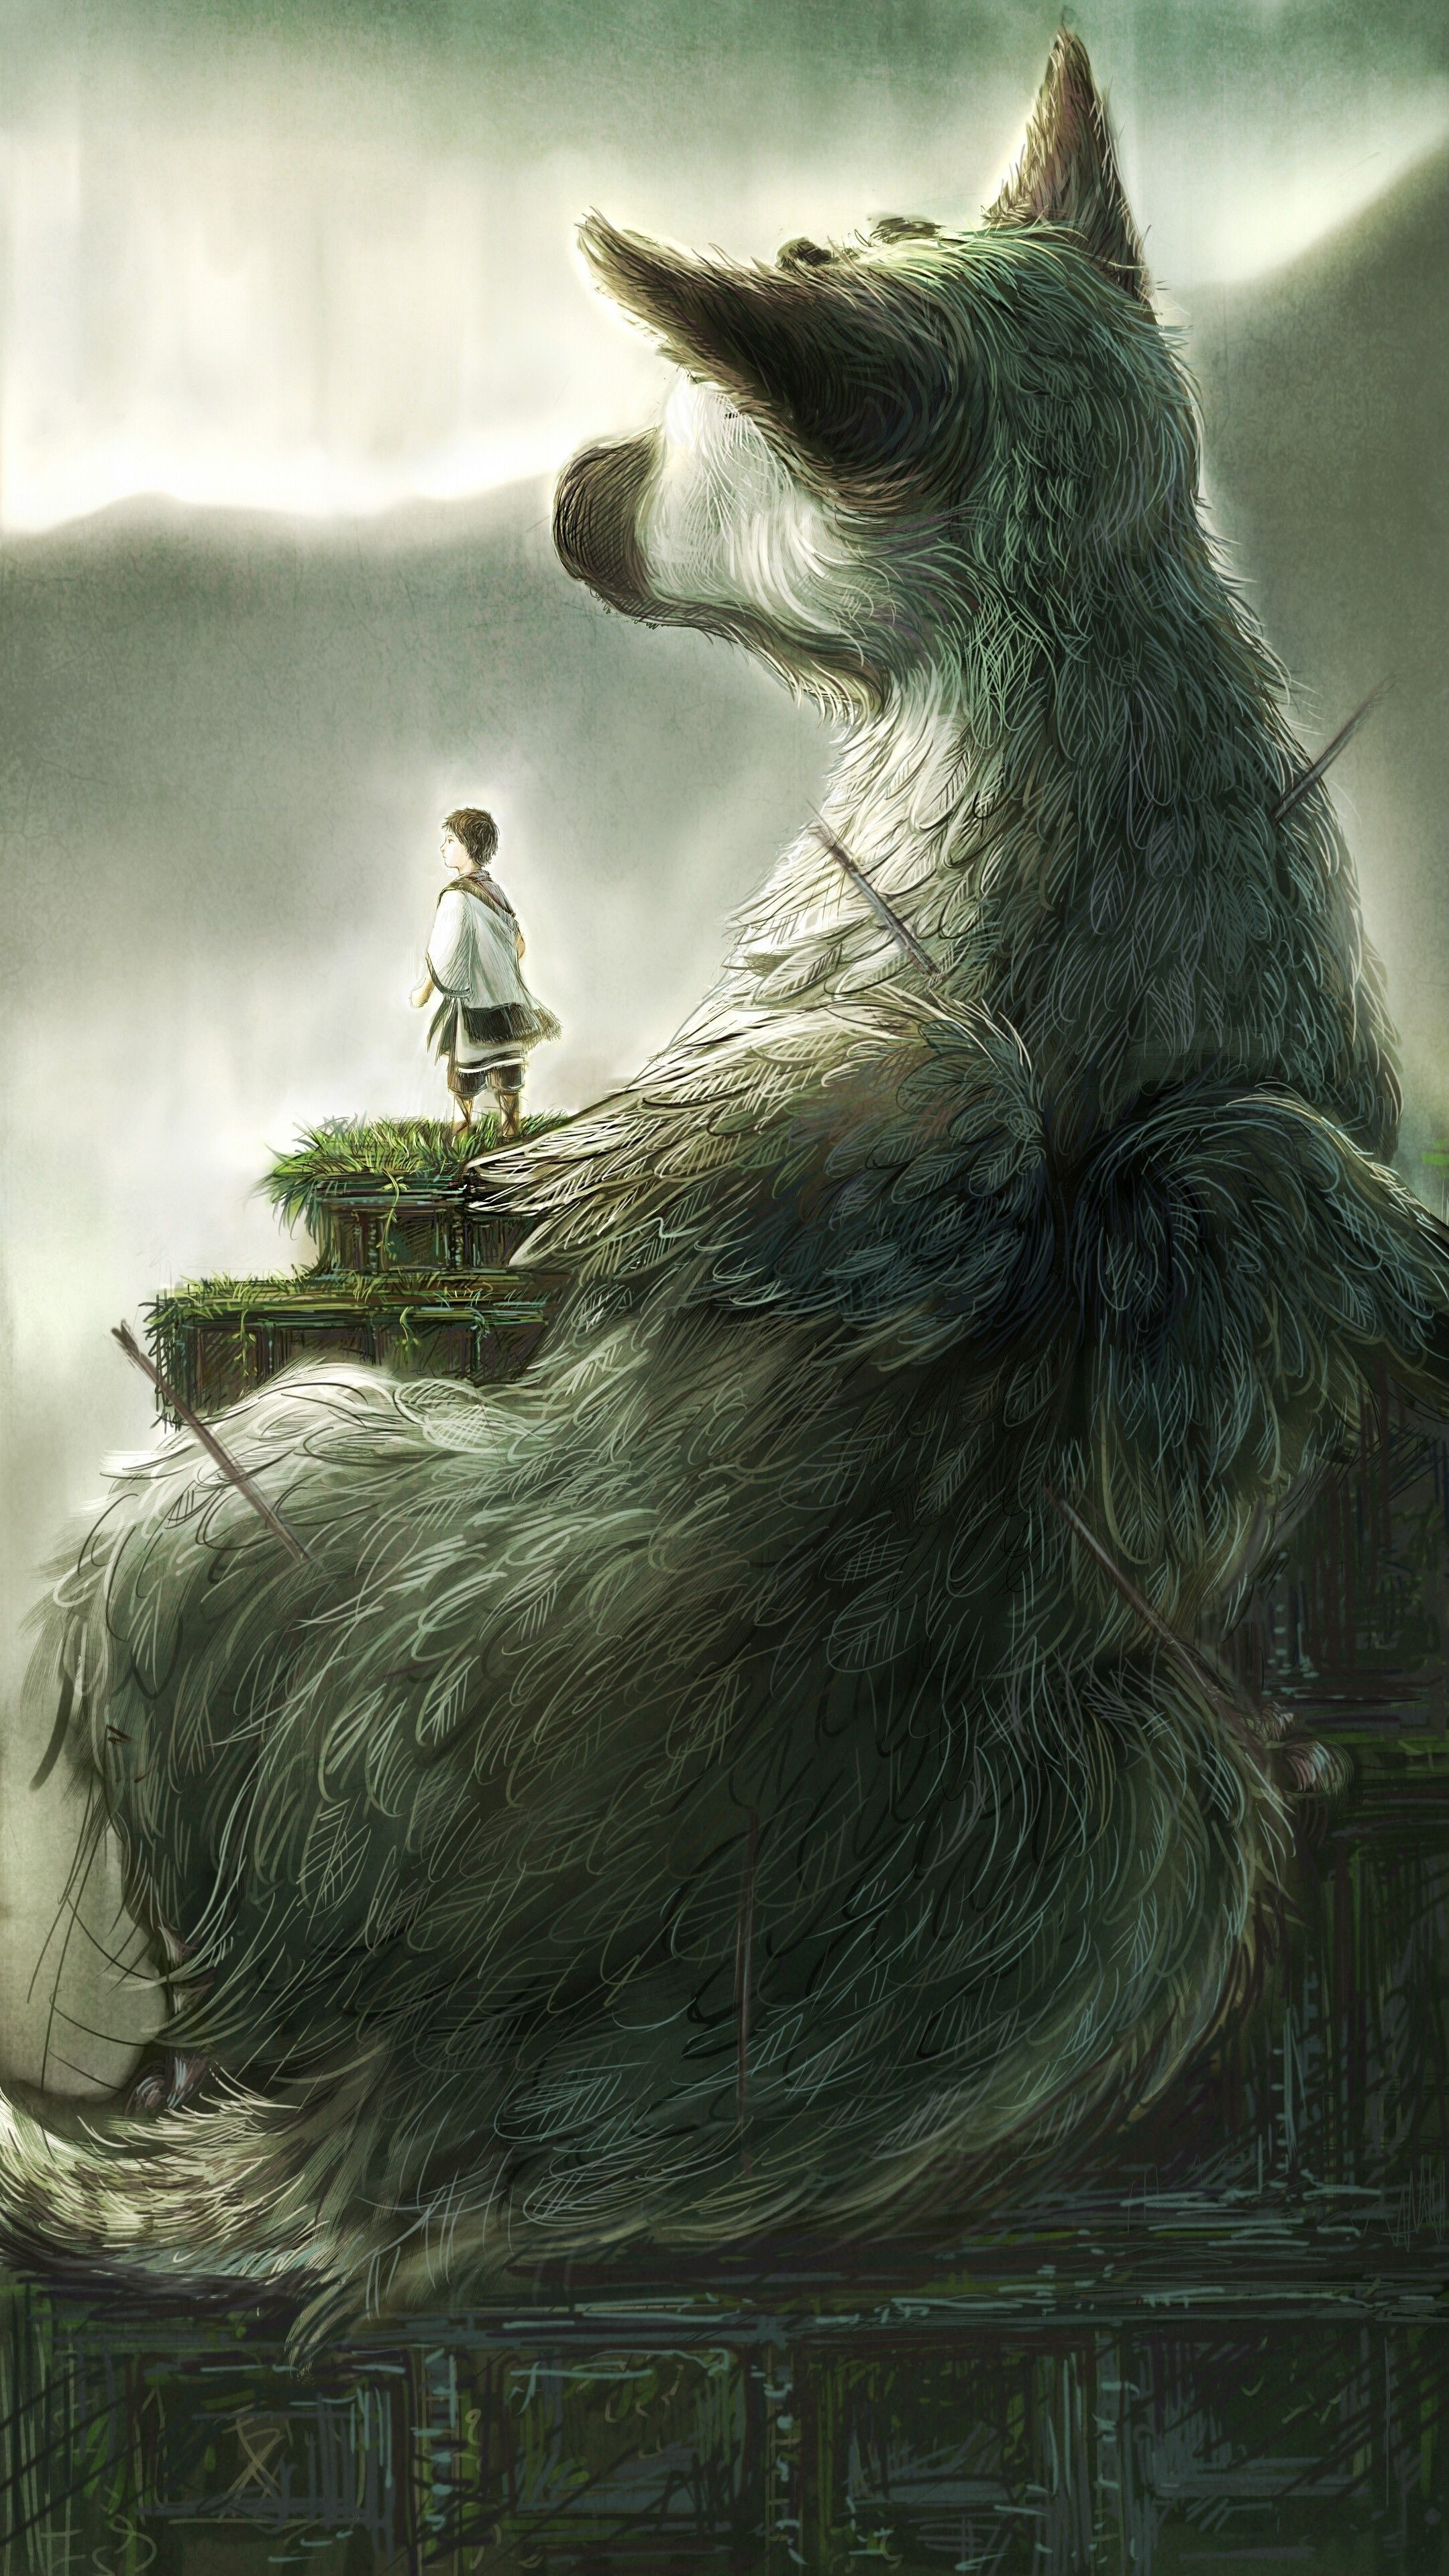 Ultra Hd 4k Image For Mobile Anime 2160x3840 Wallpaper Pin On Anime Wallpapers Trend Hd Anime Wallpapers Shadow Of The Colossus Art